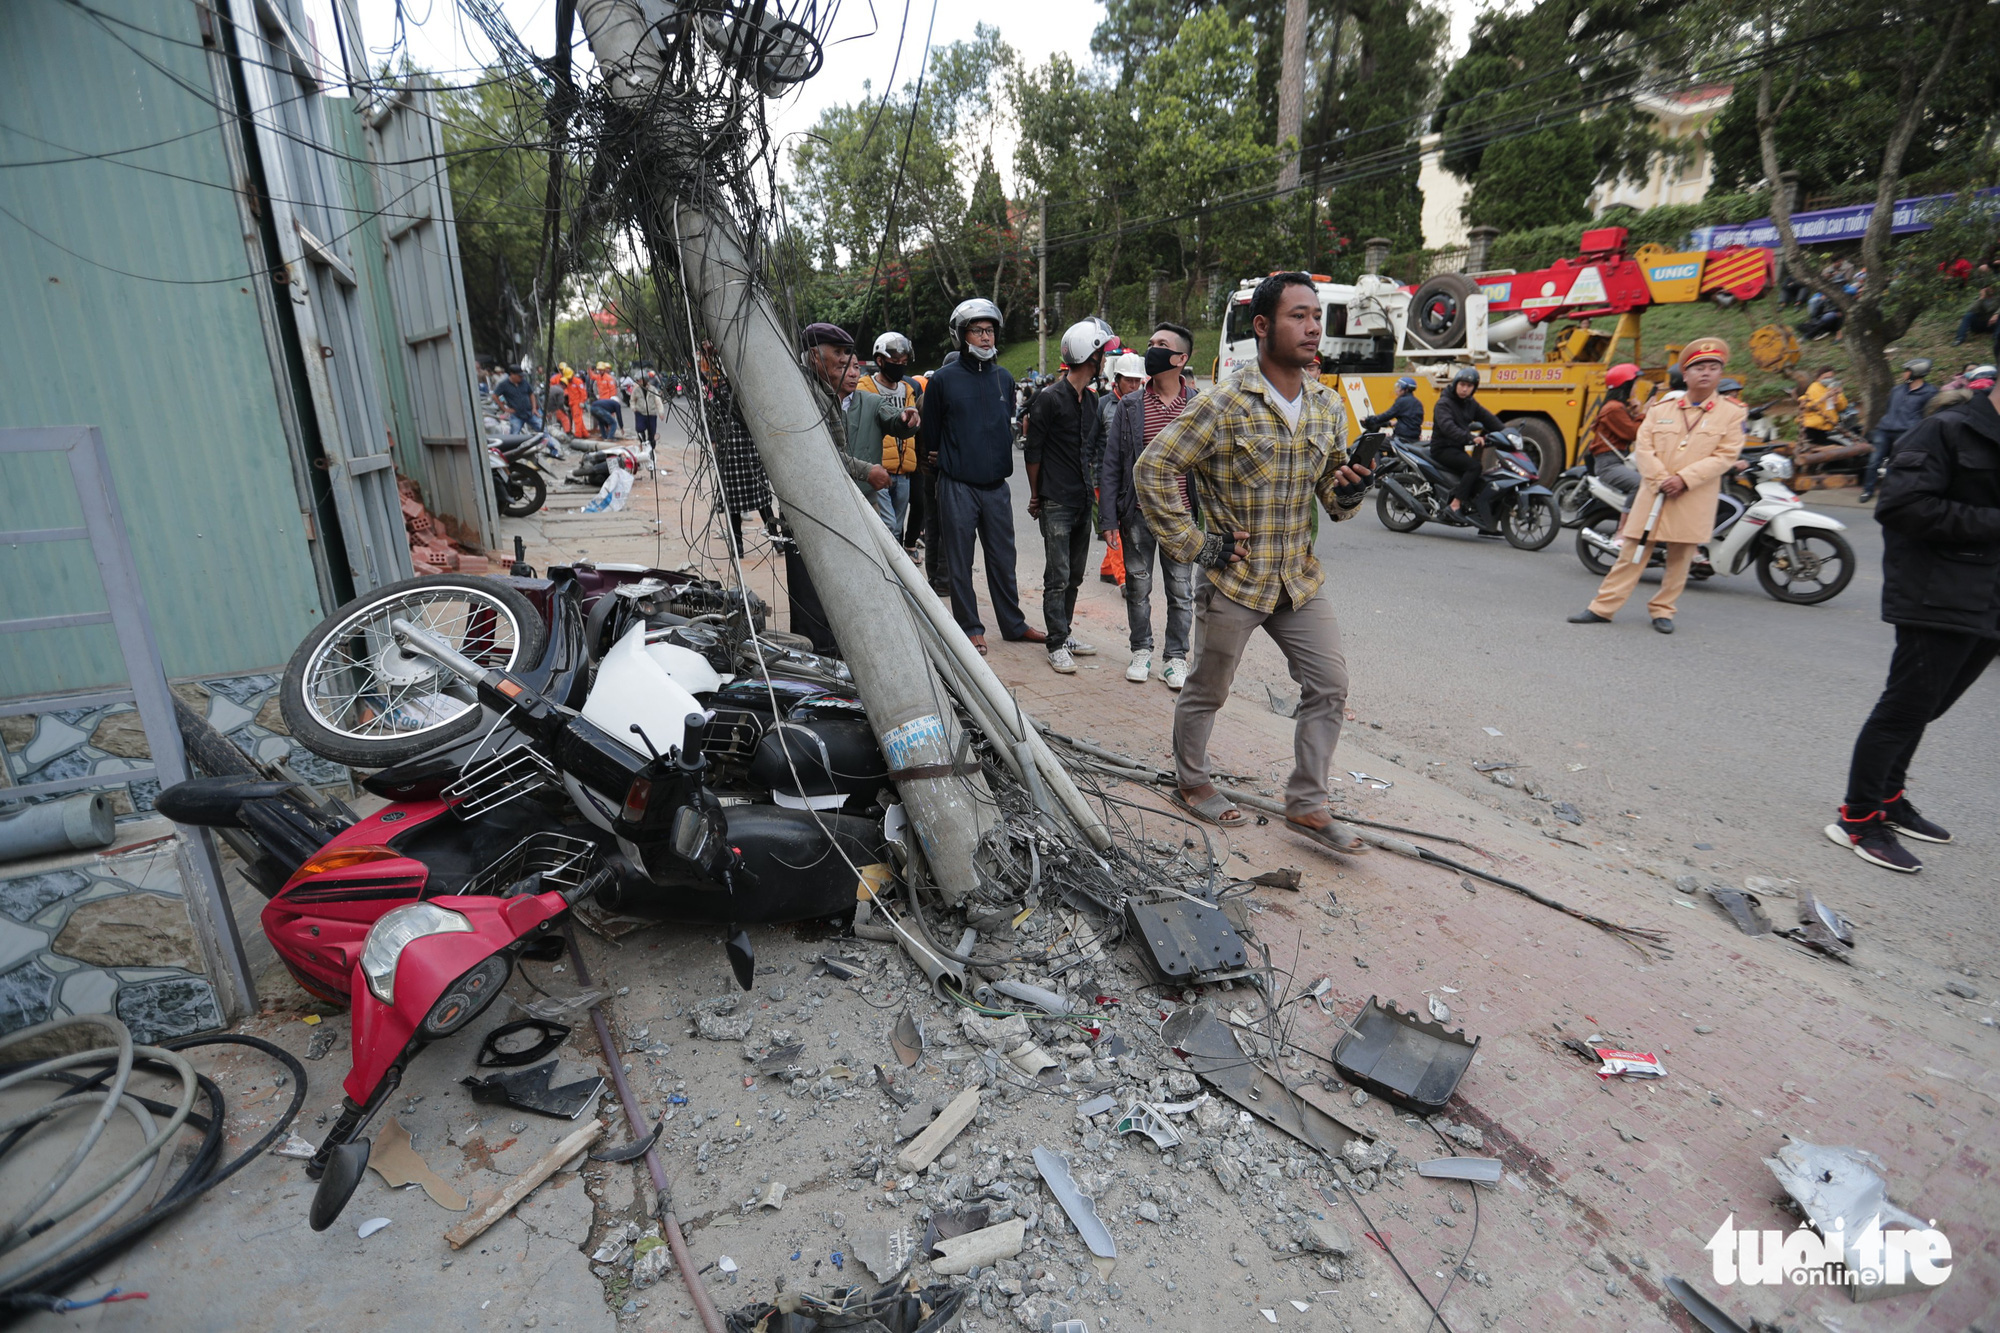 A utility pole is broke after being hit by a truck in Da Lat City, Lam Dong Province, Vietnam, October 24, 2020. Photo: M.Vinh / Tuoi Tre